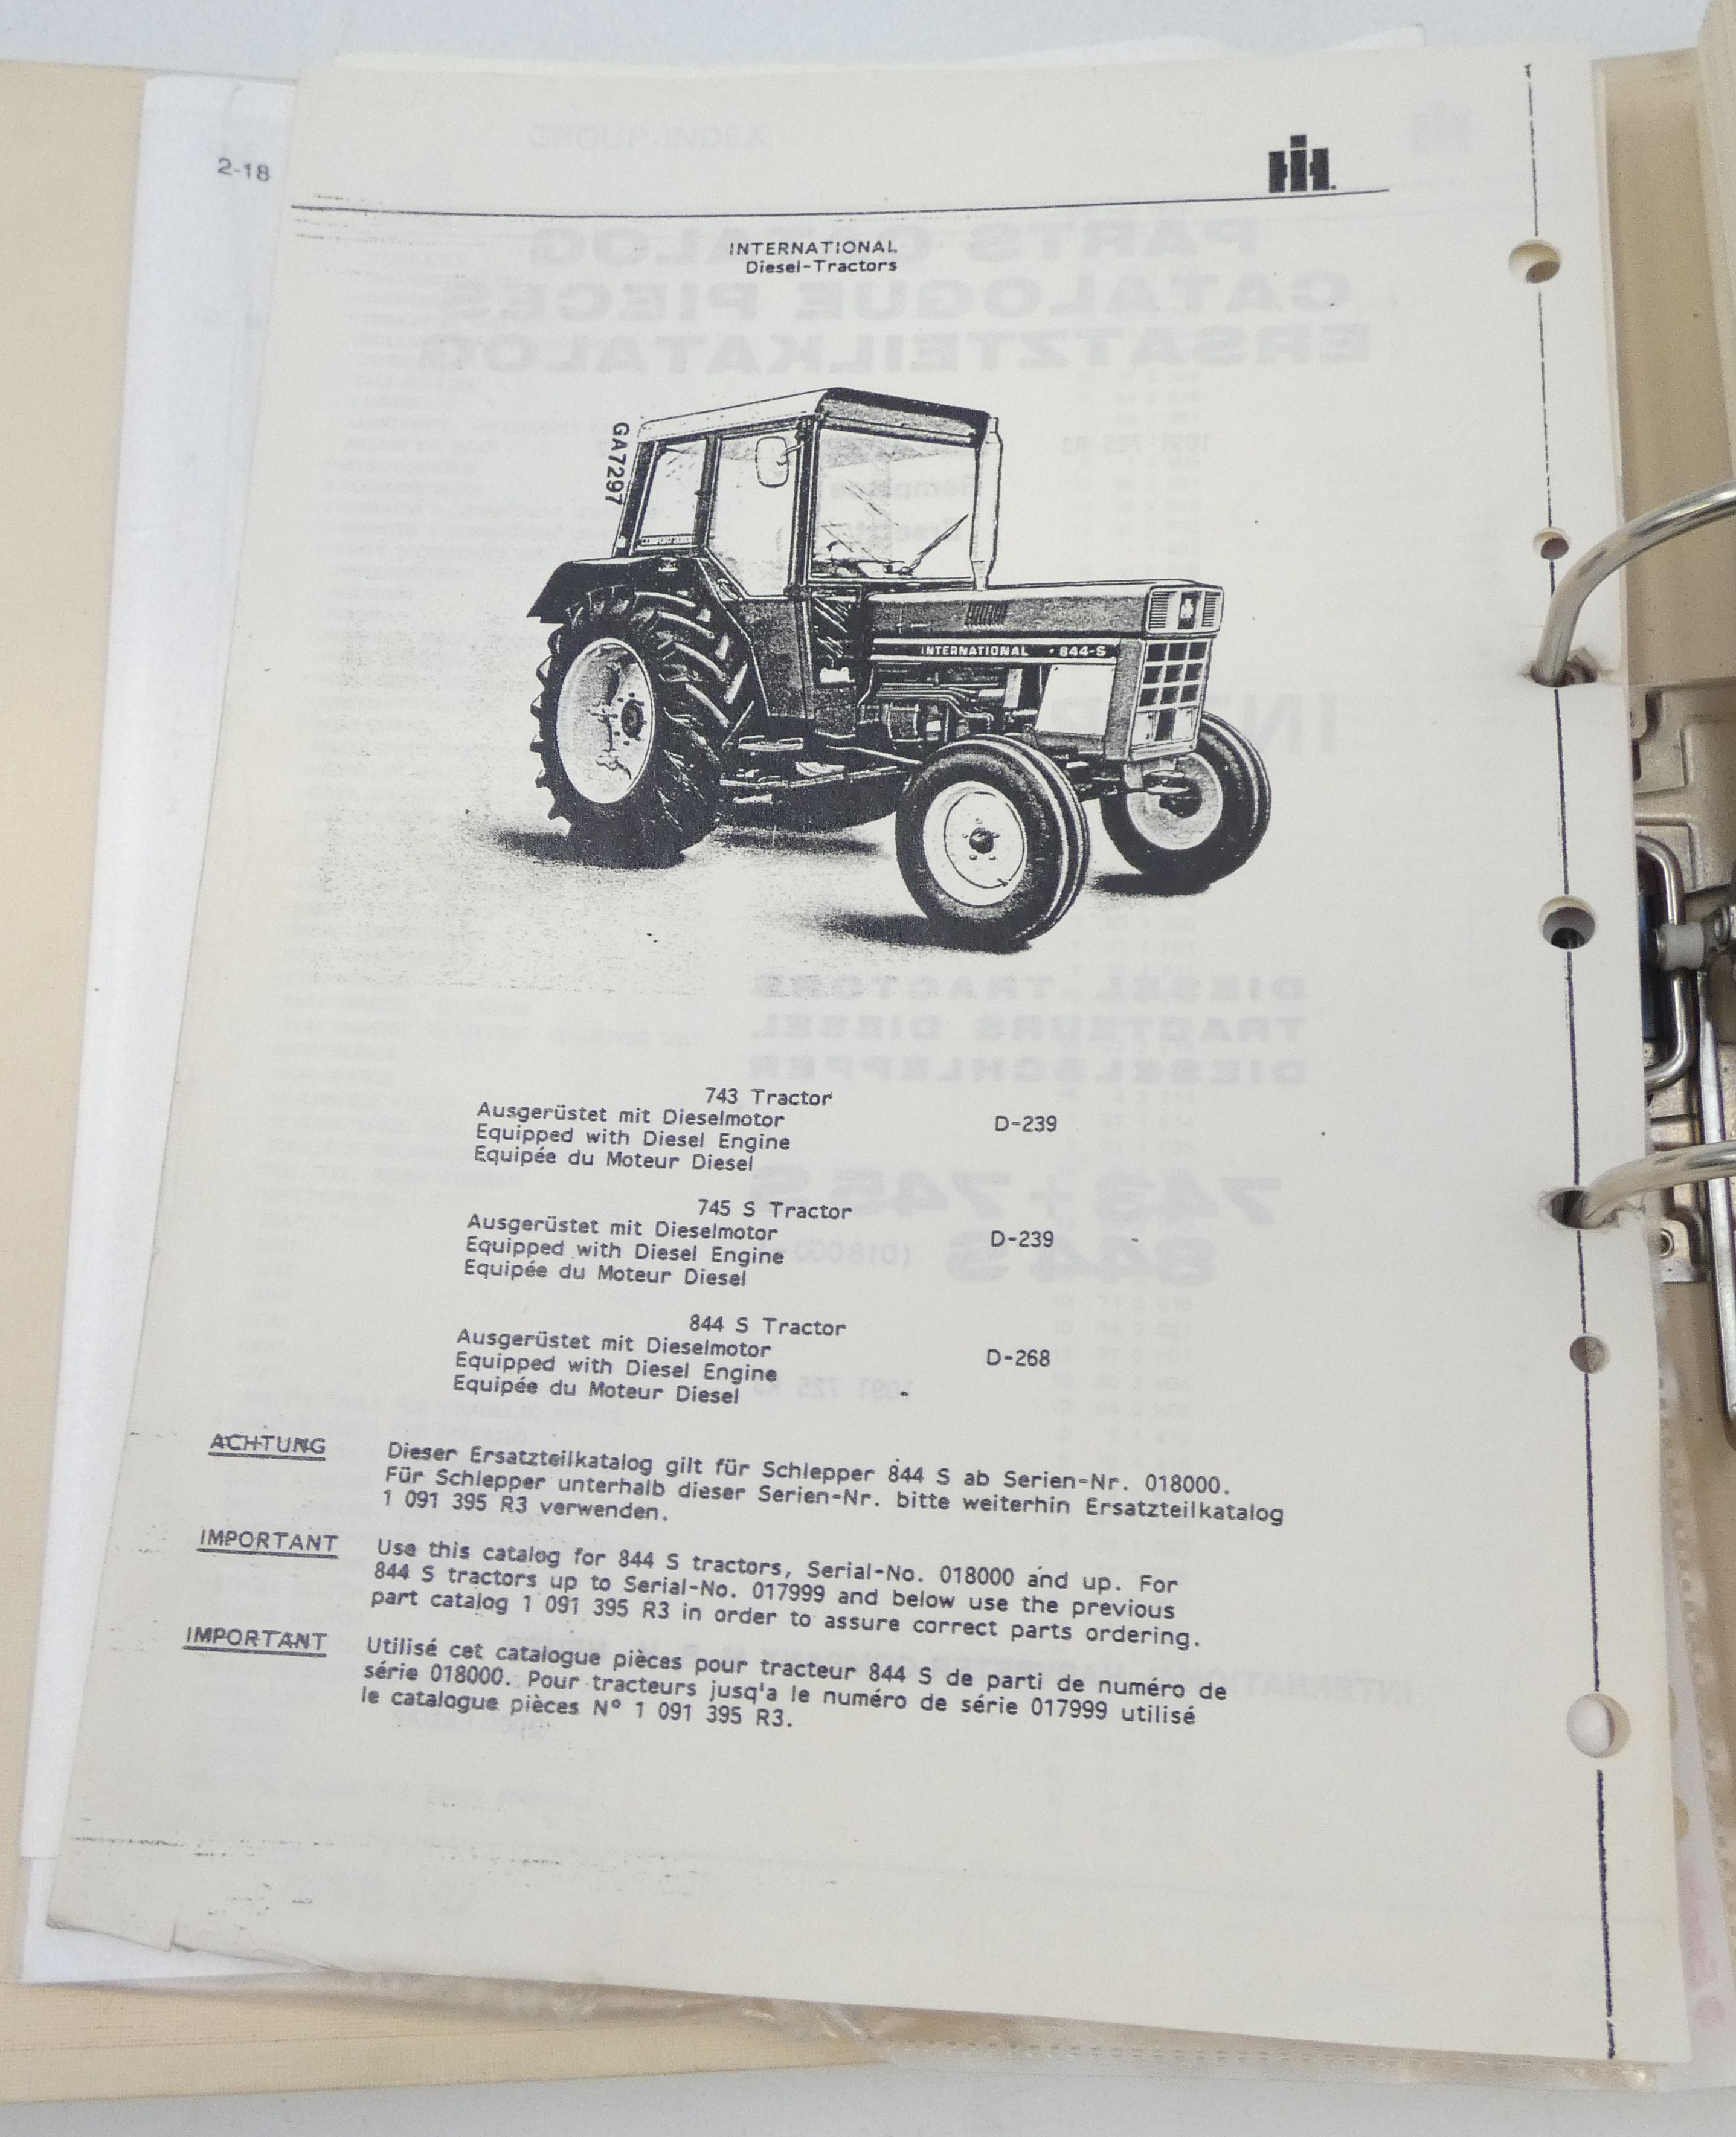 CaseIH 743, 745S, 844S (PIN 18000-) diesel tractor parts catalog